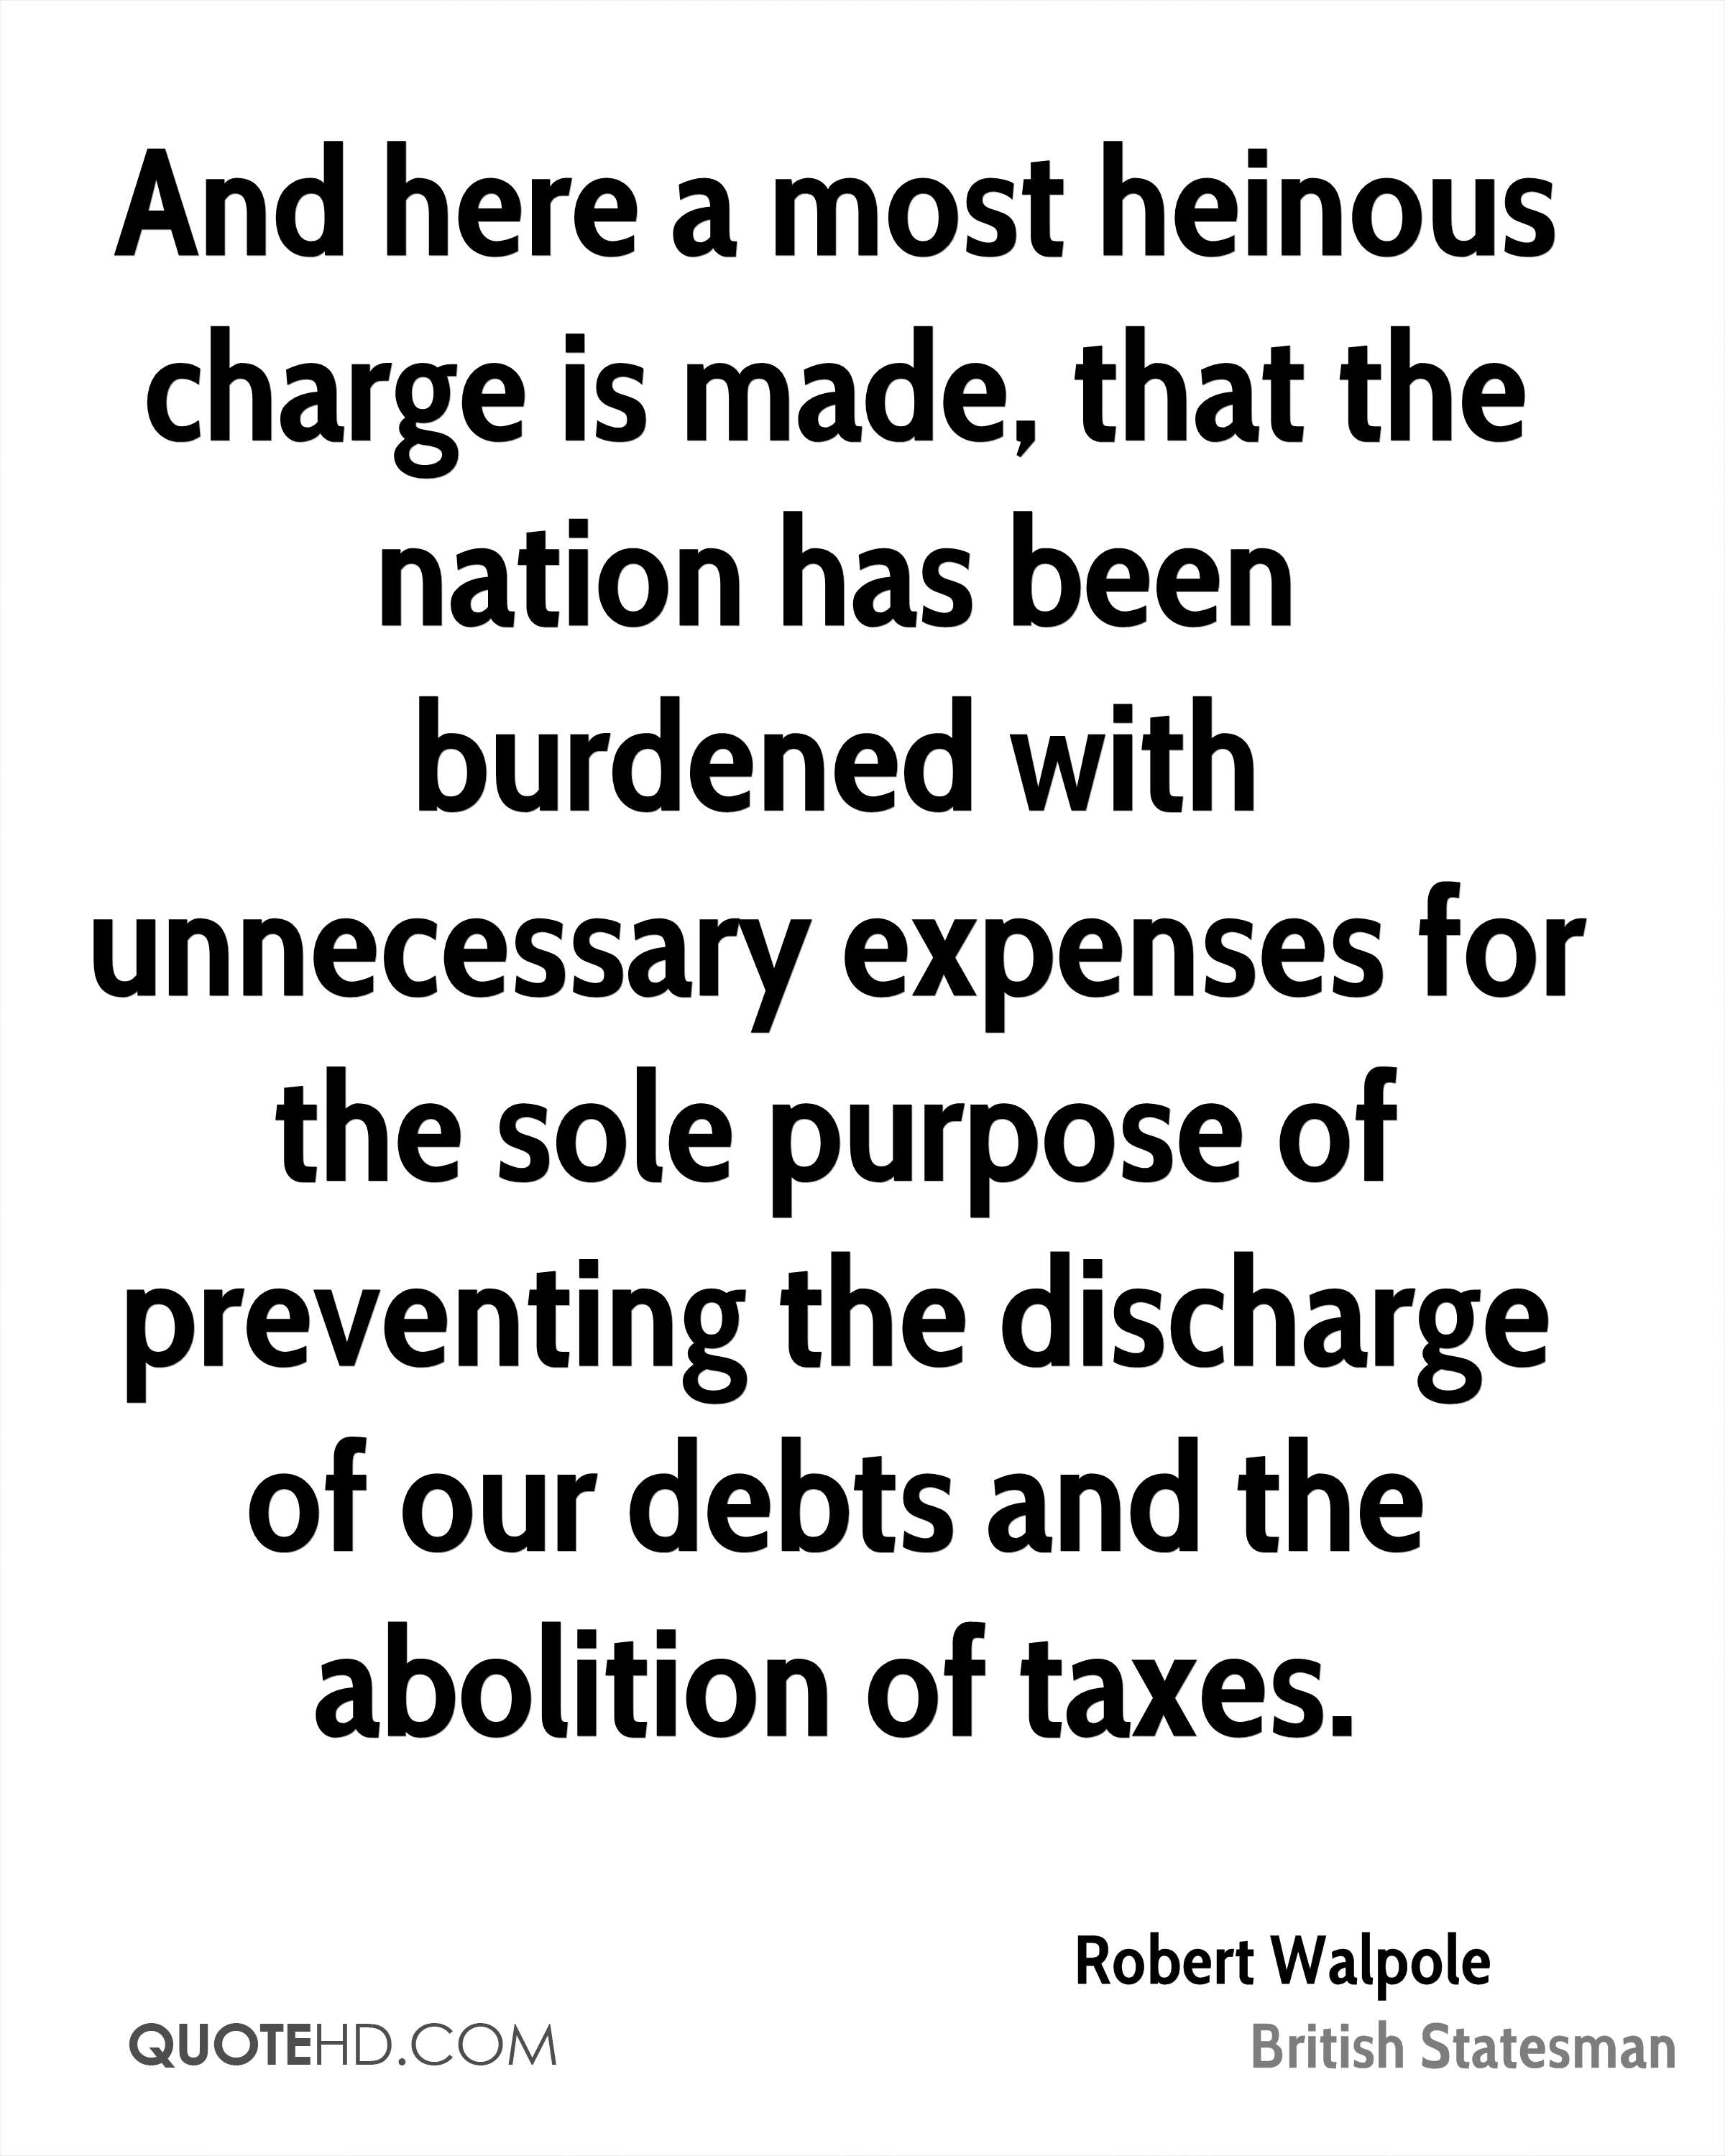 And here a most heinous charge is made, that the nation has been burdened with unnecessary expenses for the sole purpose of preventing the discharge of our debts and the abolition of taxes.